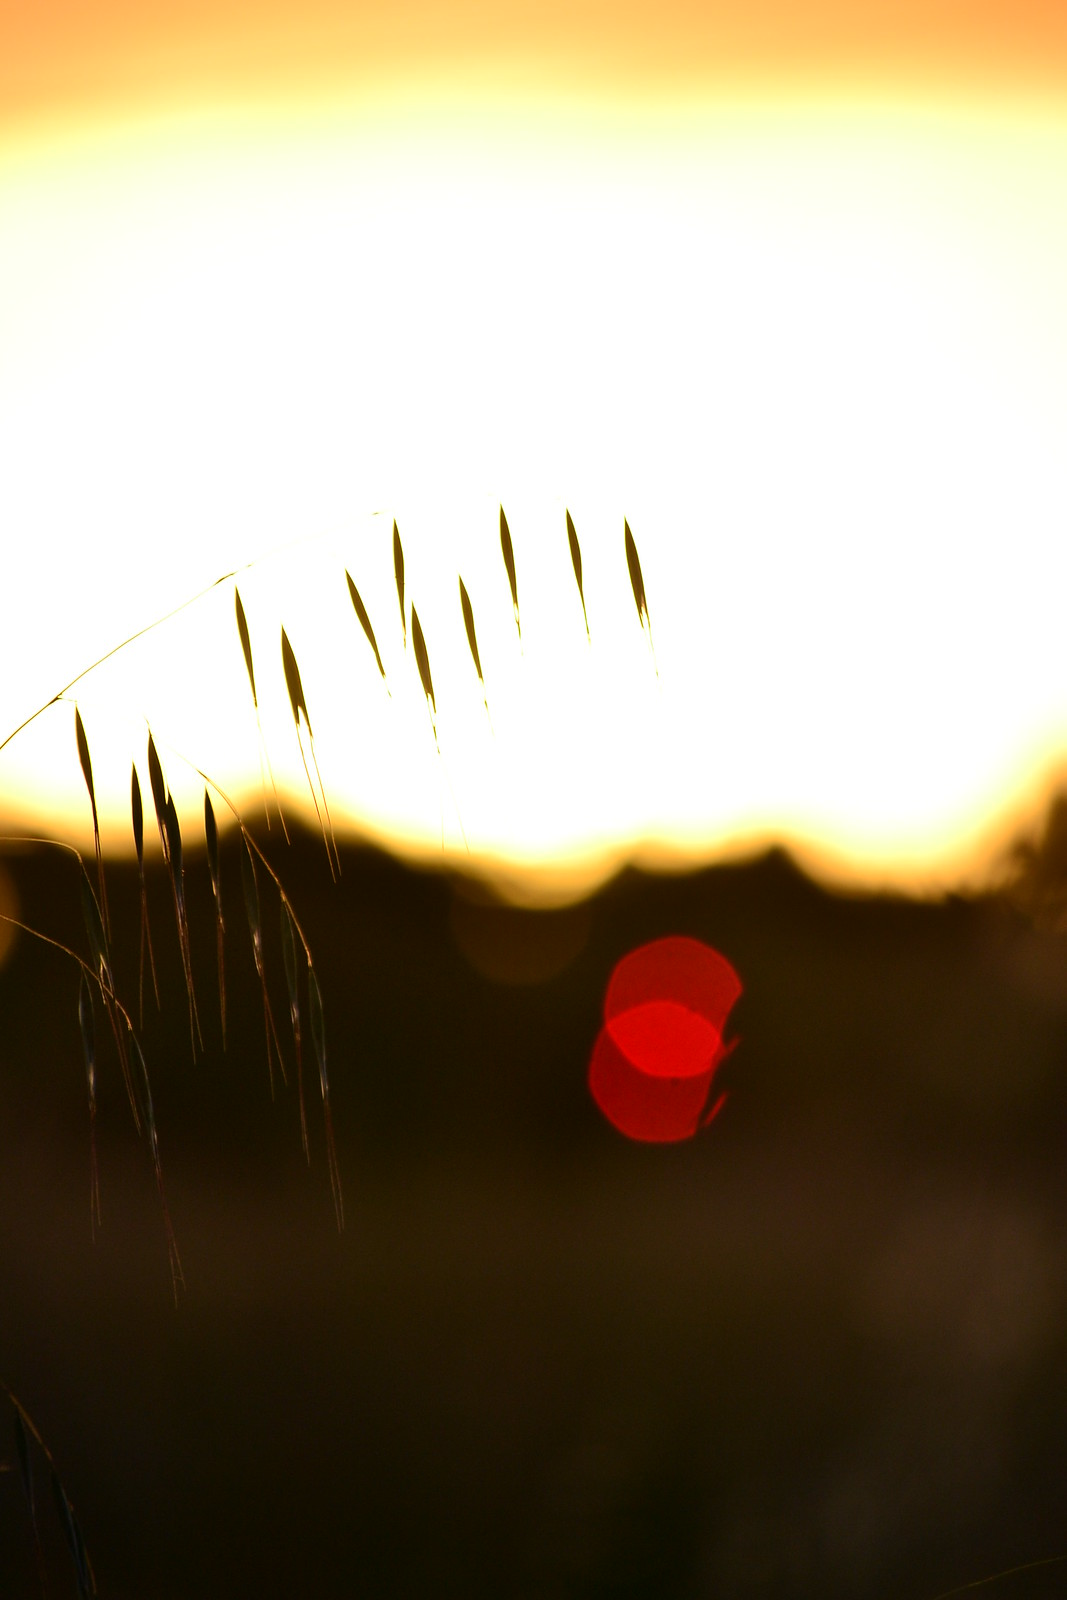 Grass by Jarle D